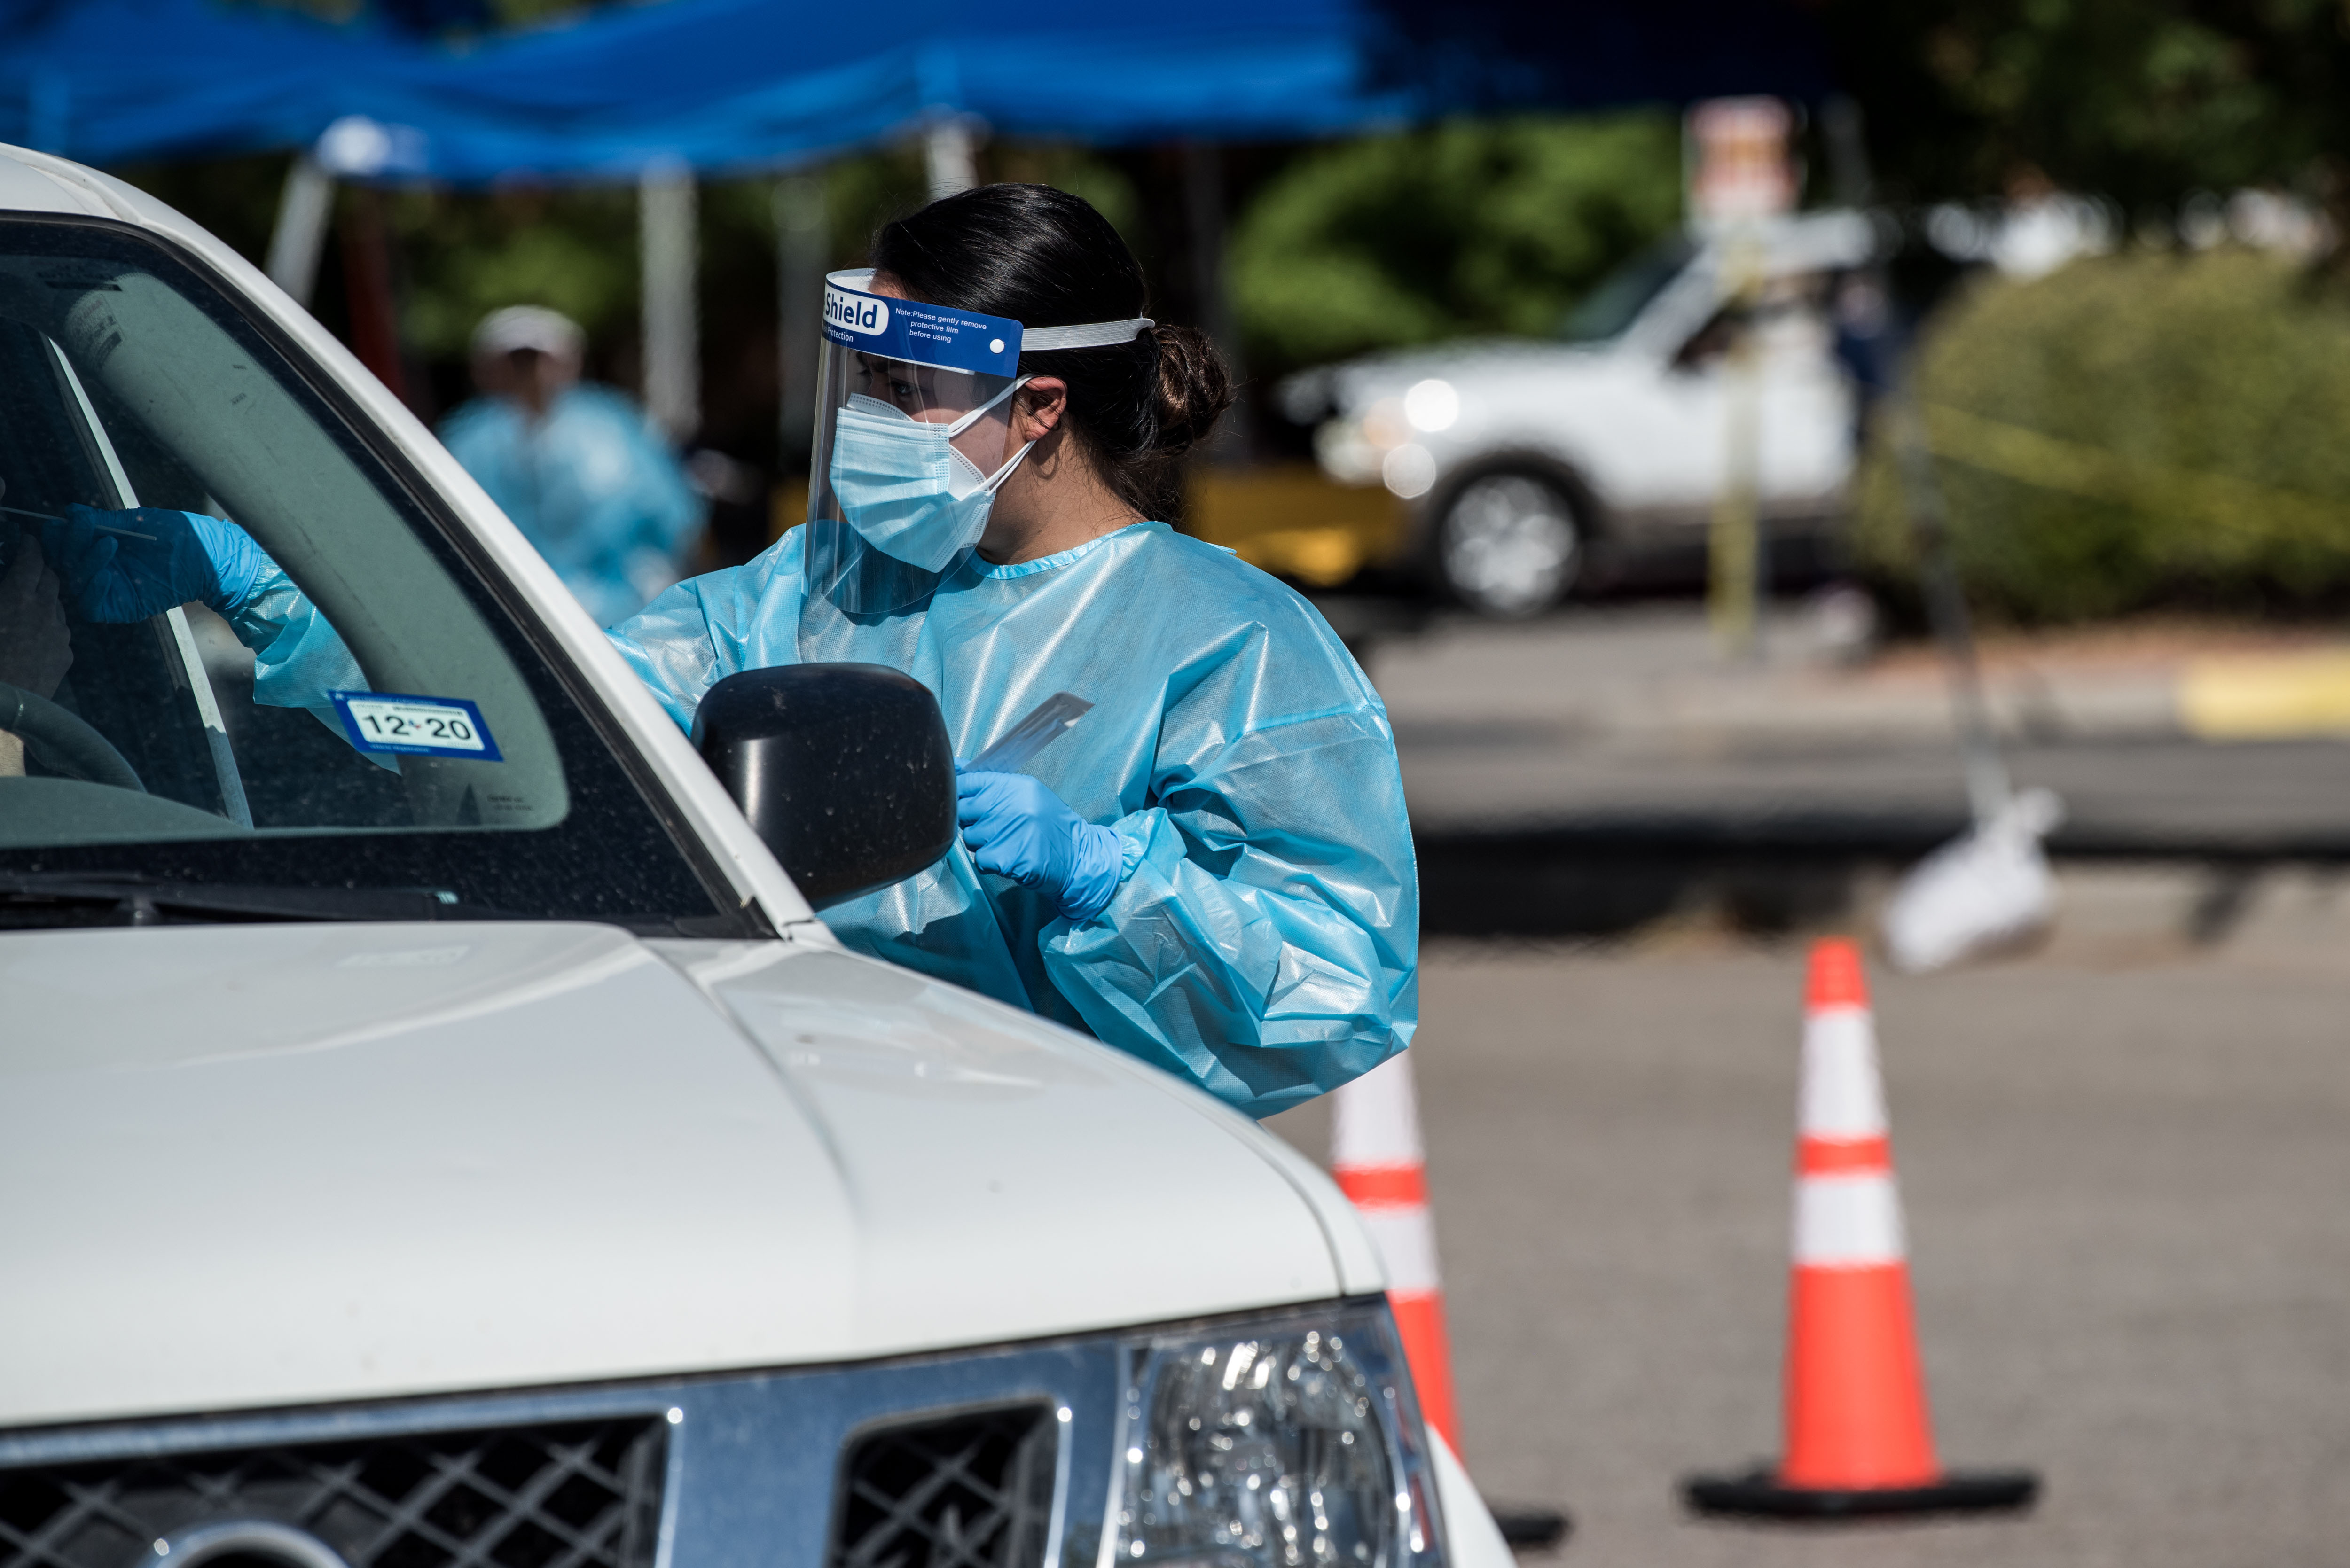 A nurse conducts a coronavirus test in El Paso, Texas, on July 21.